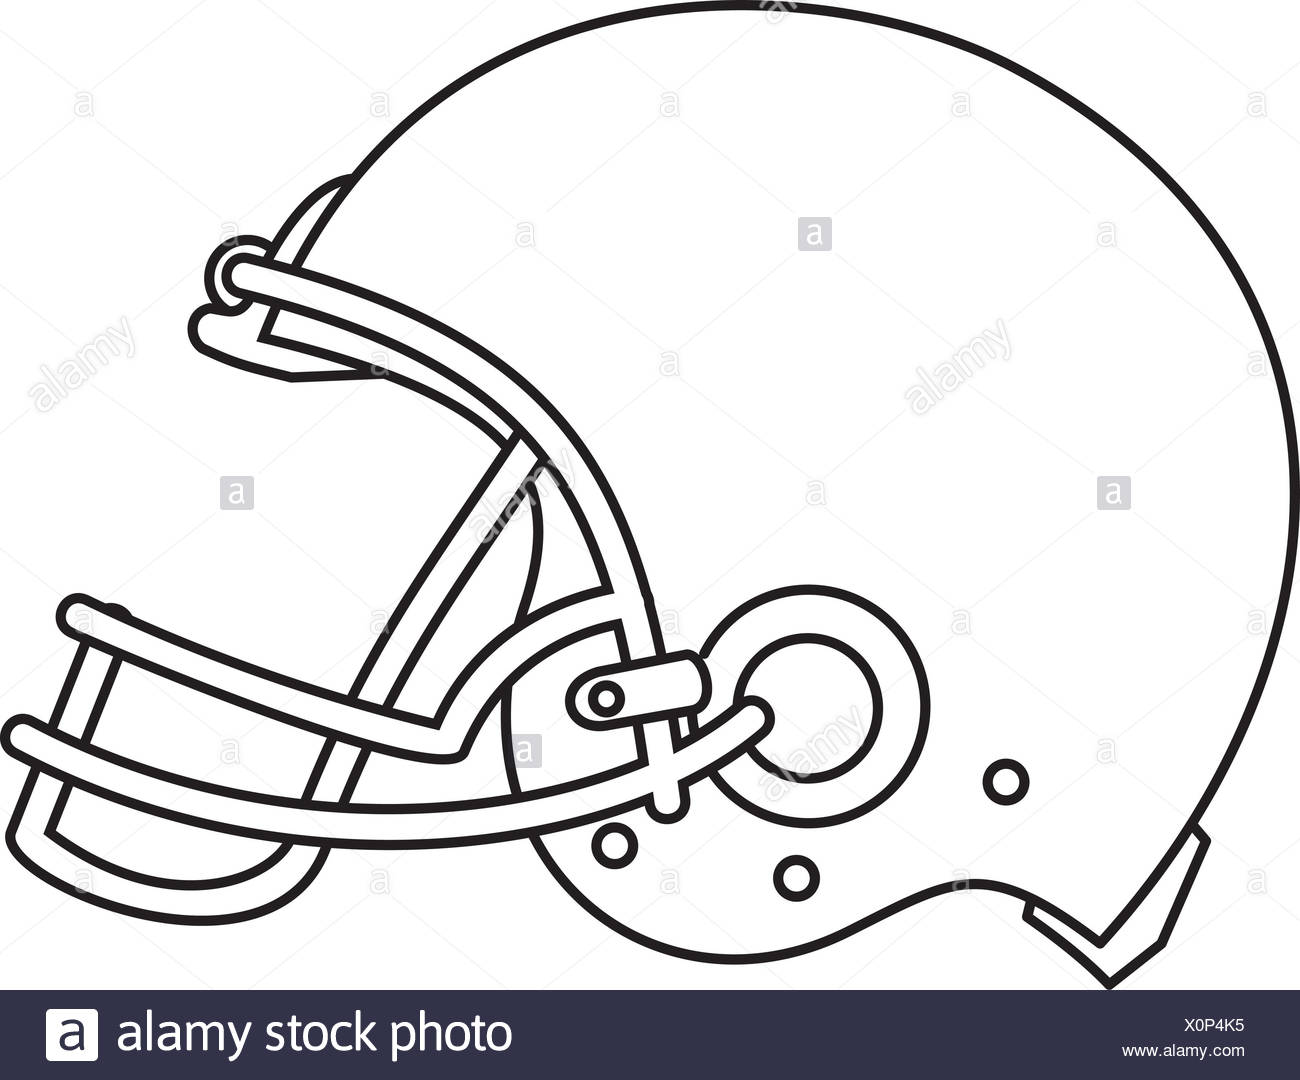 American Football Helmet Line Drawing Stock Photo 275852505 Alamy